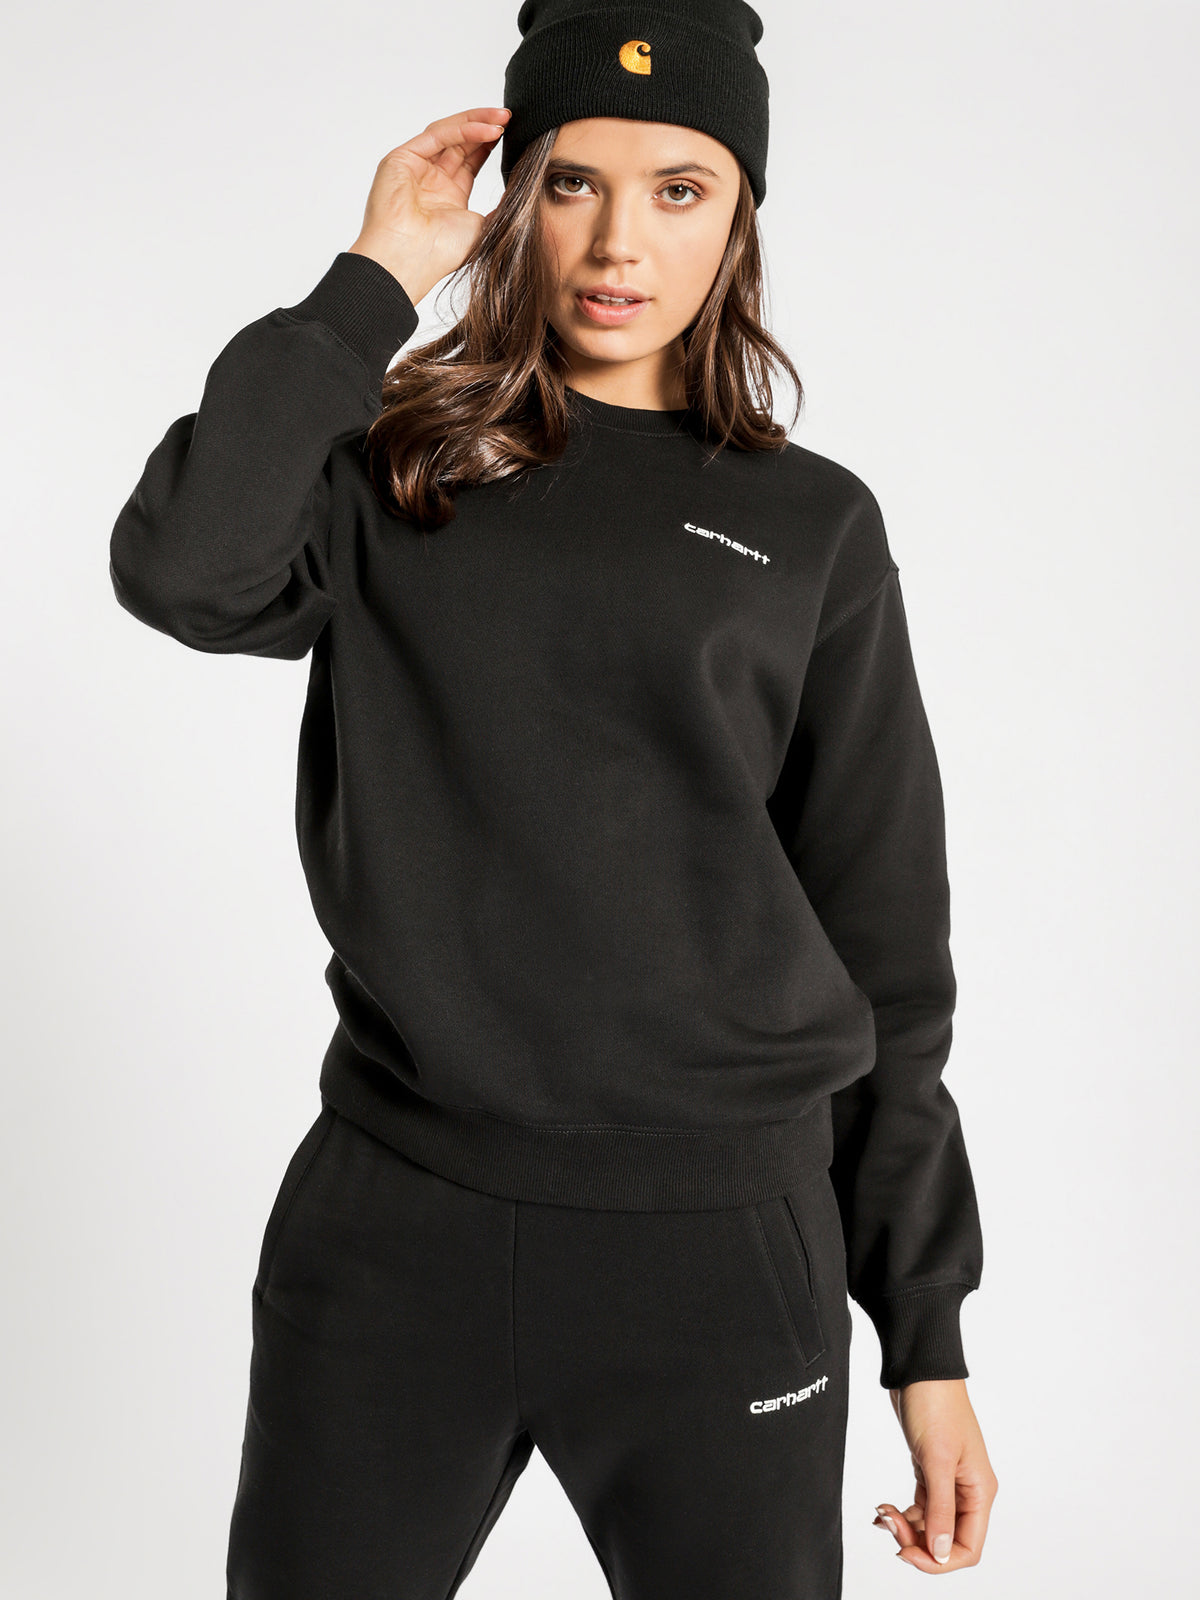 Script Embroidery Sweatshirt in Black & White